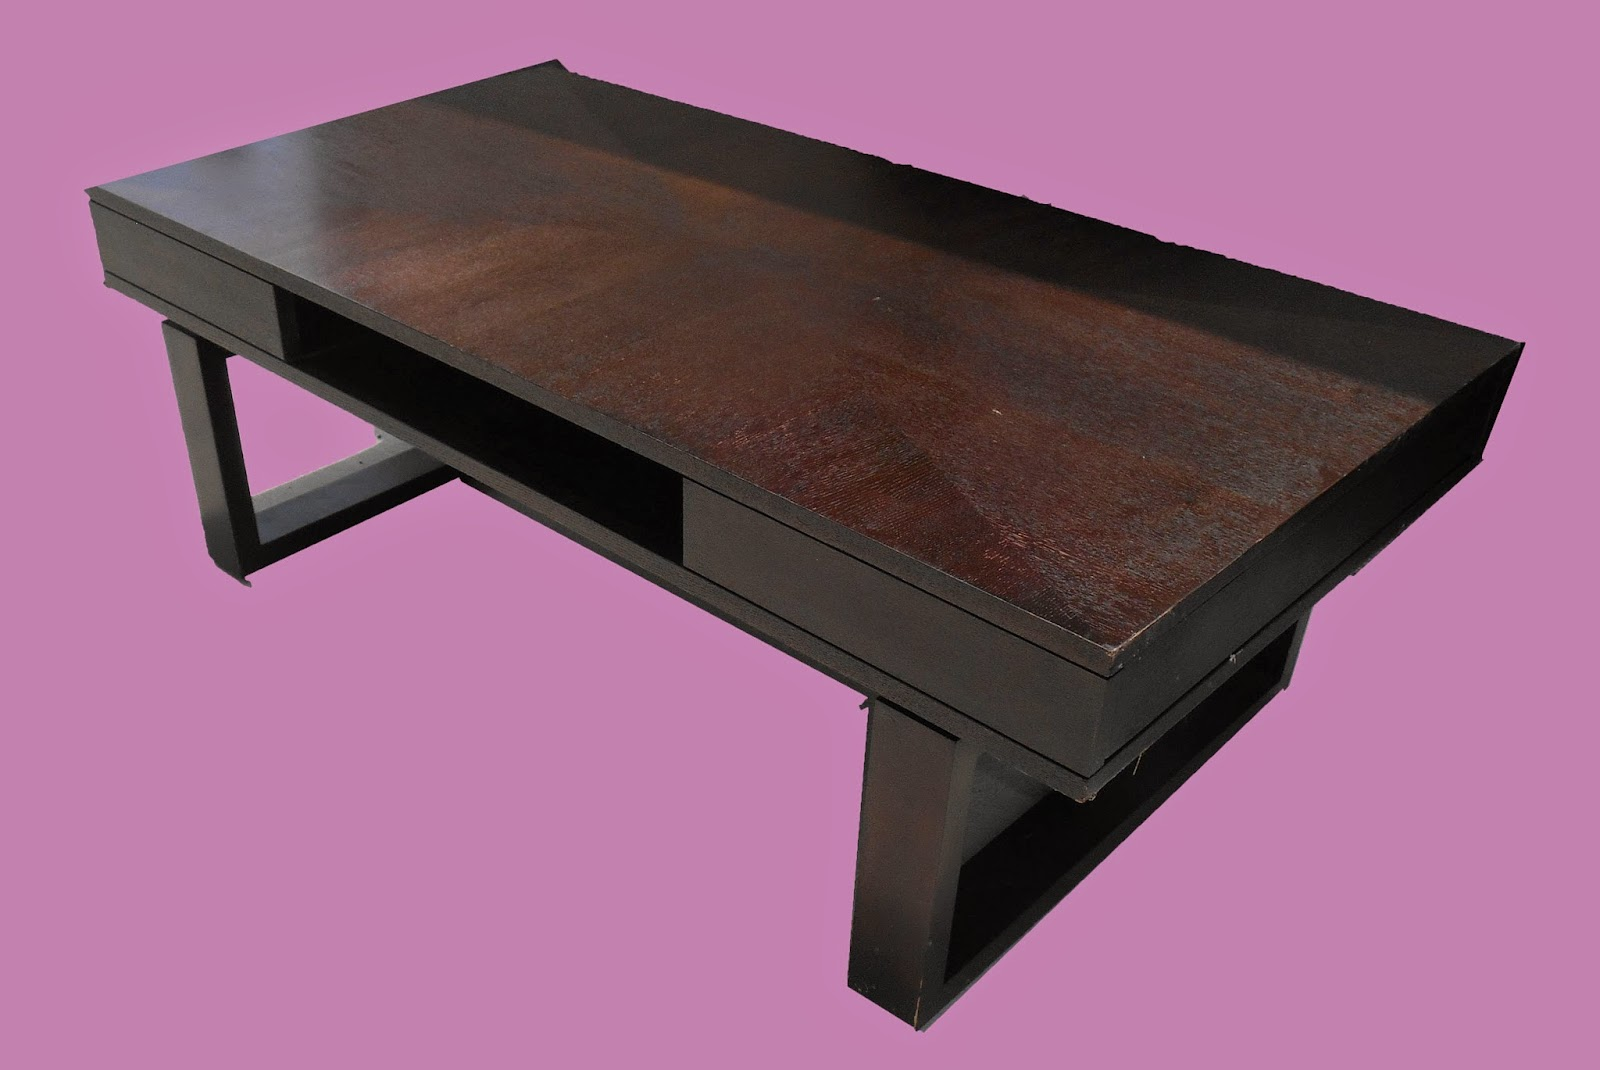 Uhuru Furniture & Collectibles: West Elm Coffee Table $125